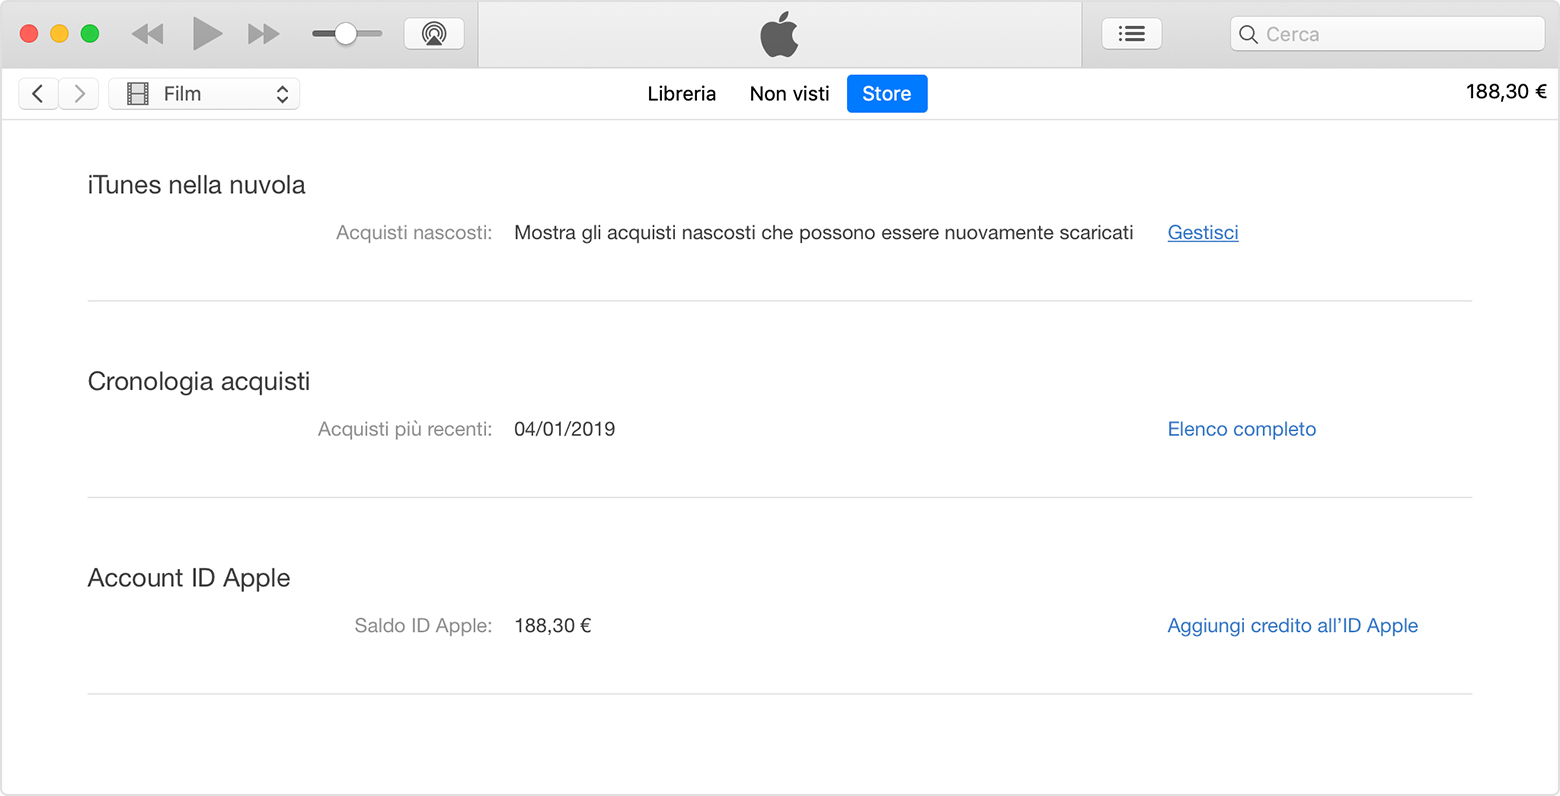 Pagina Informazioni account in iTunes.